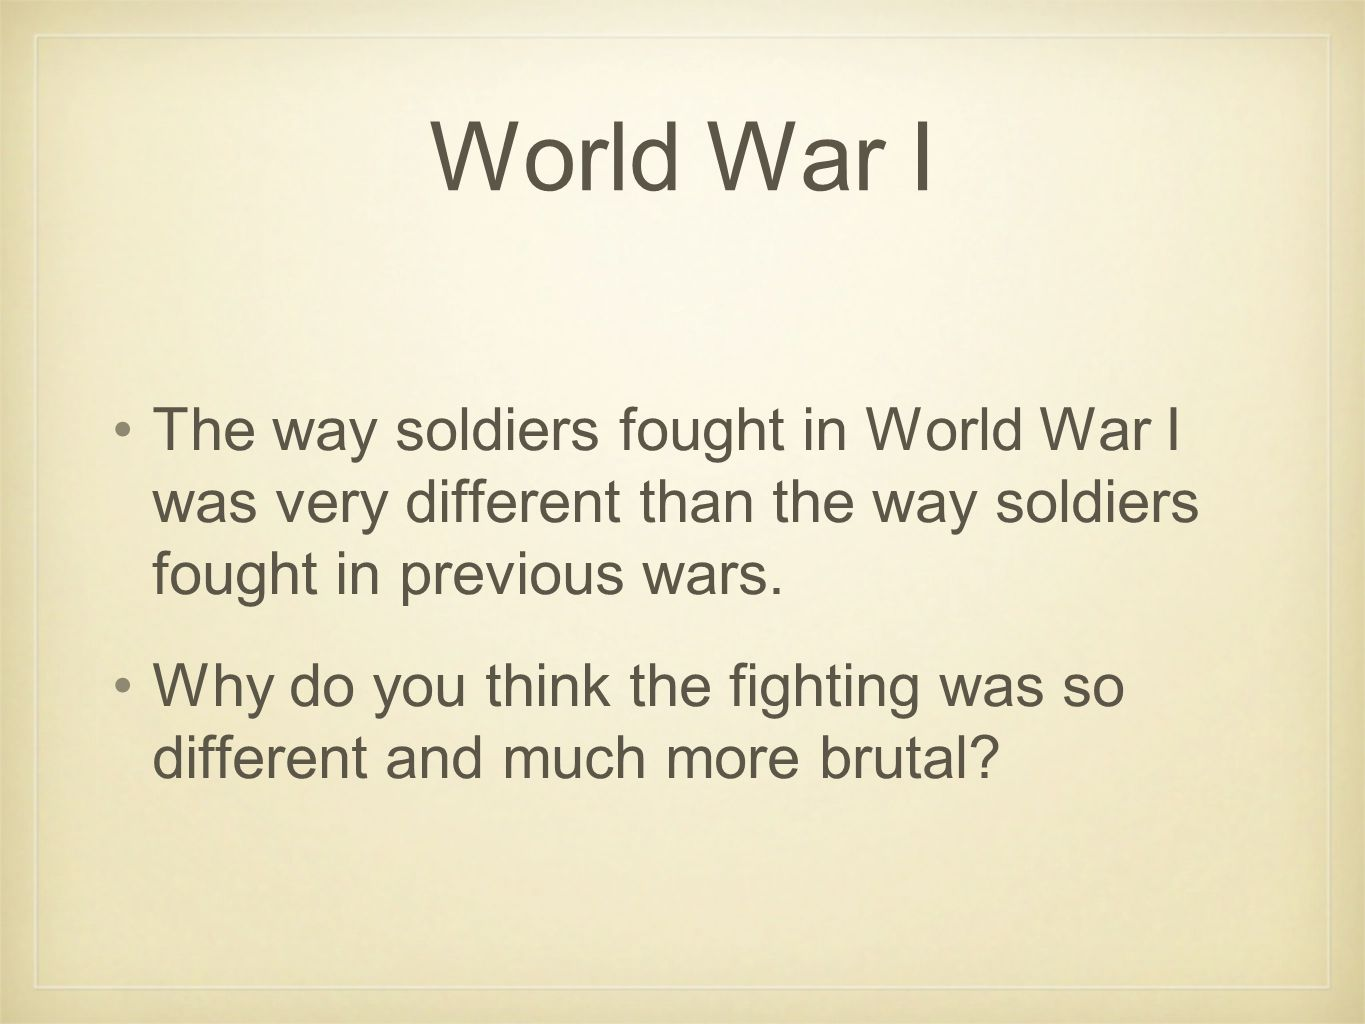 World War I The way soldiers fought in World War I was very different than the way soldiers fought in previous wars.